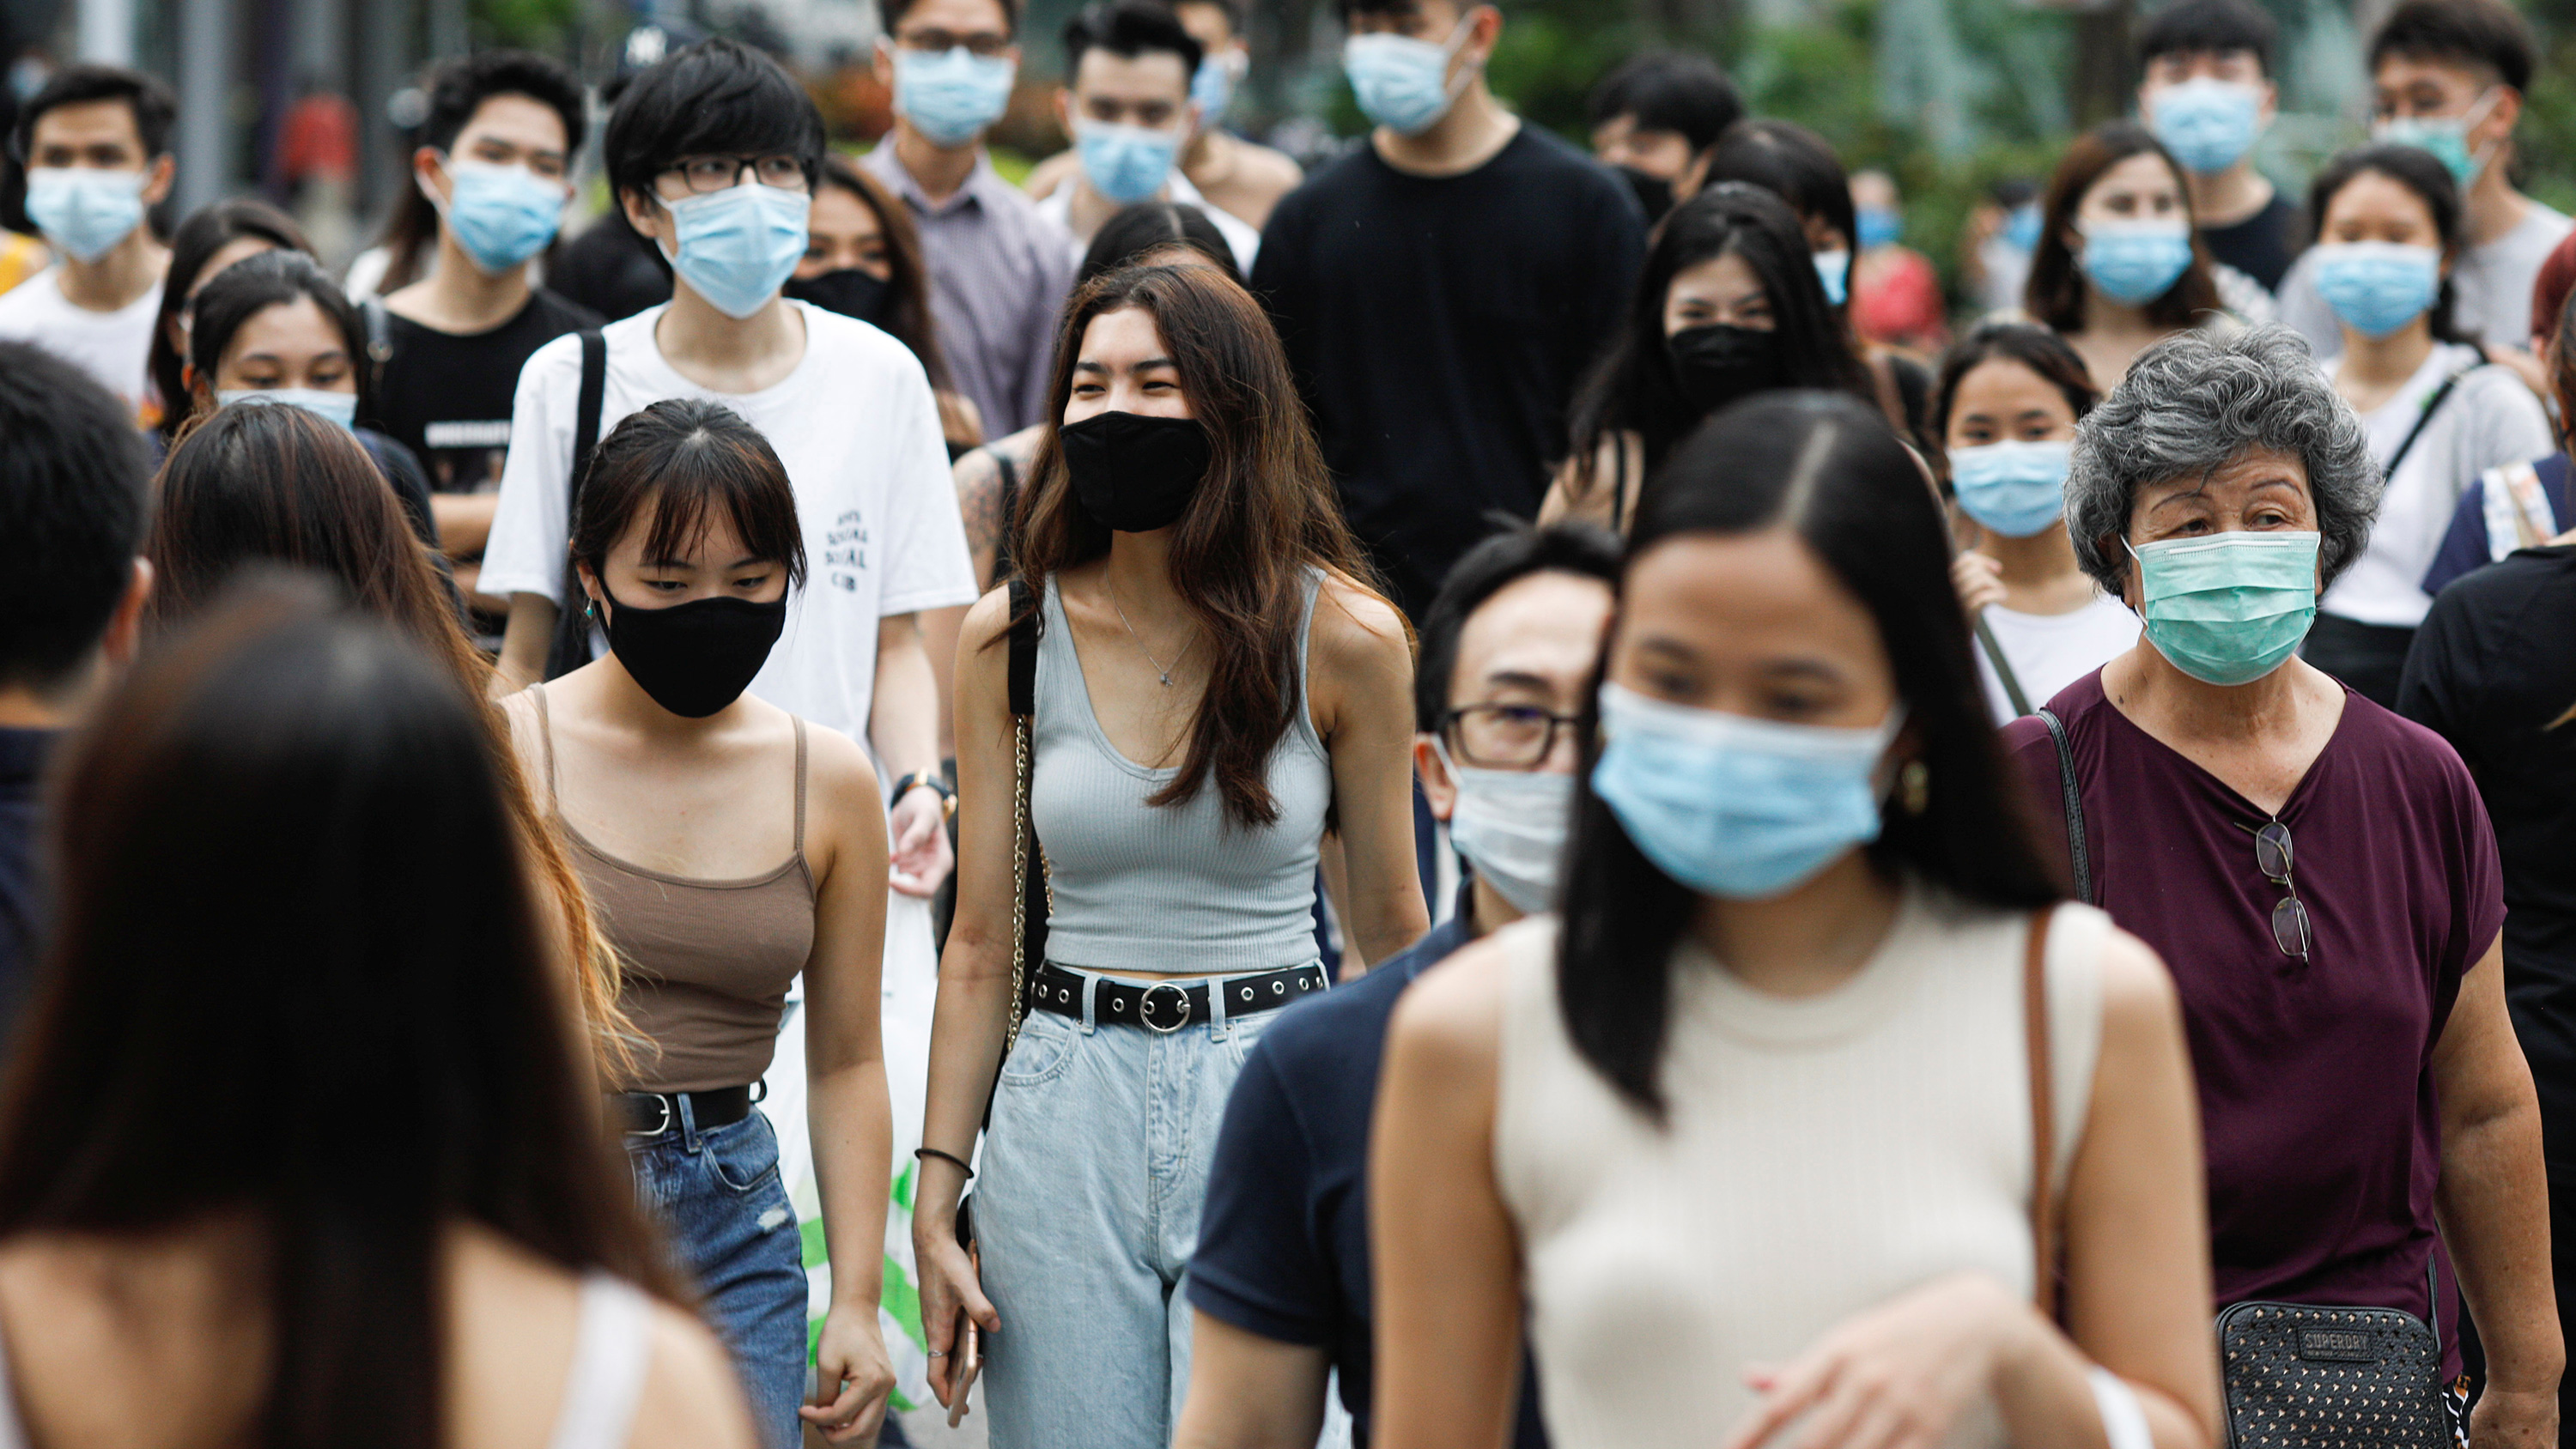 The photo shows a busy street bustling with foot traffic, and strikingly every single person appears to be wearing a mask. The photo shows